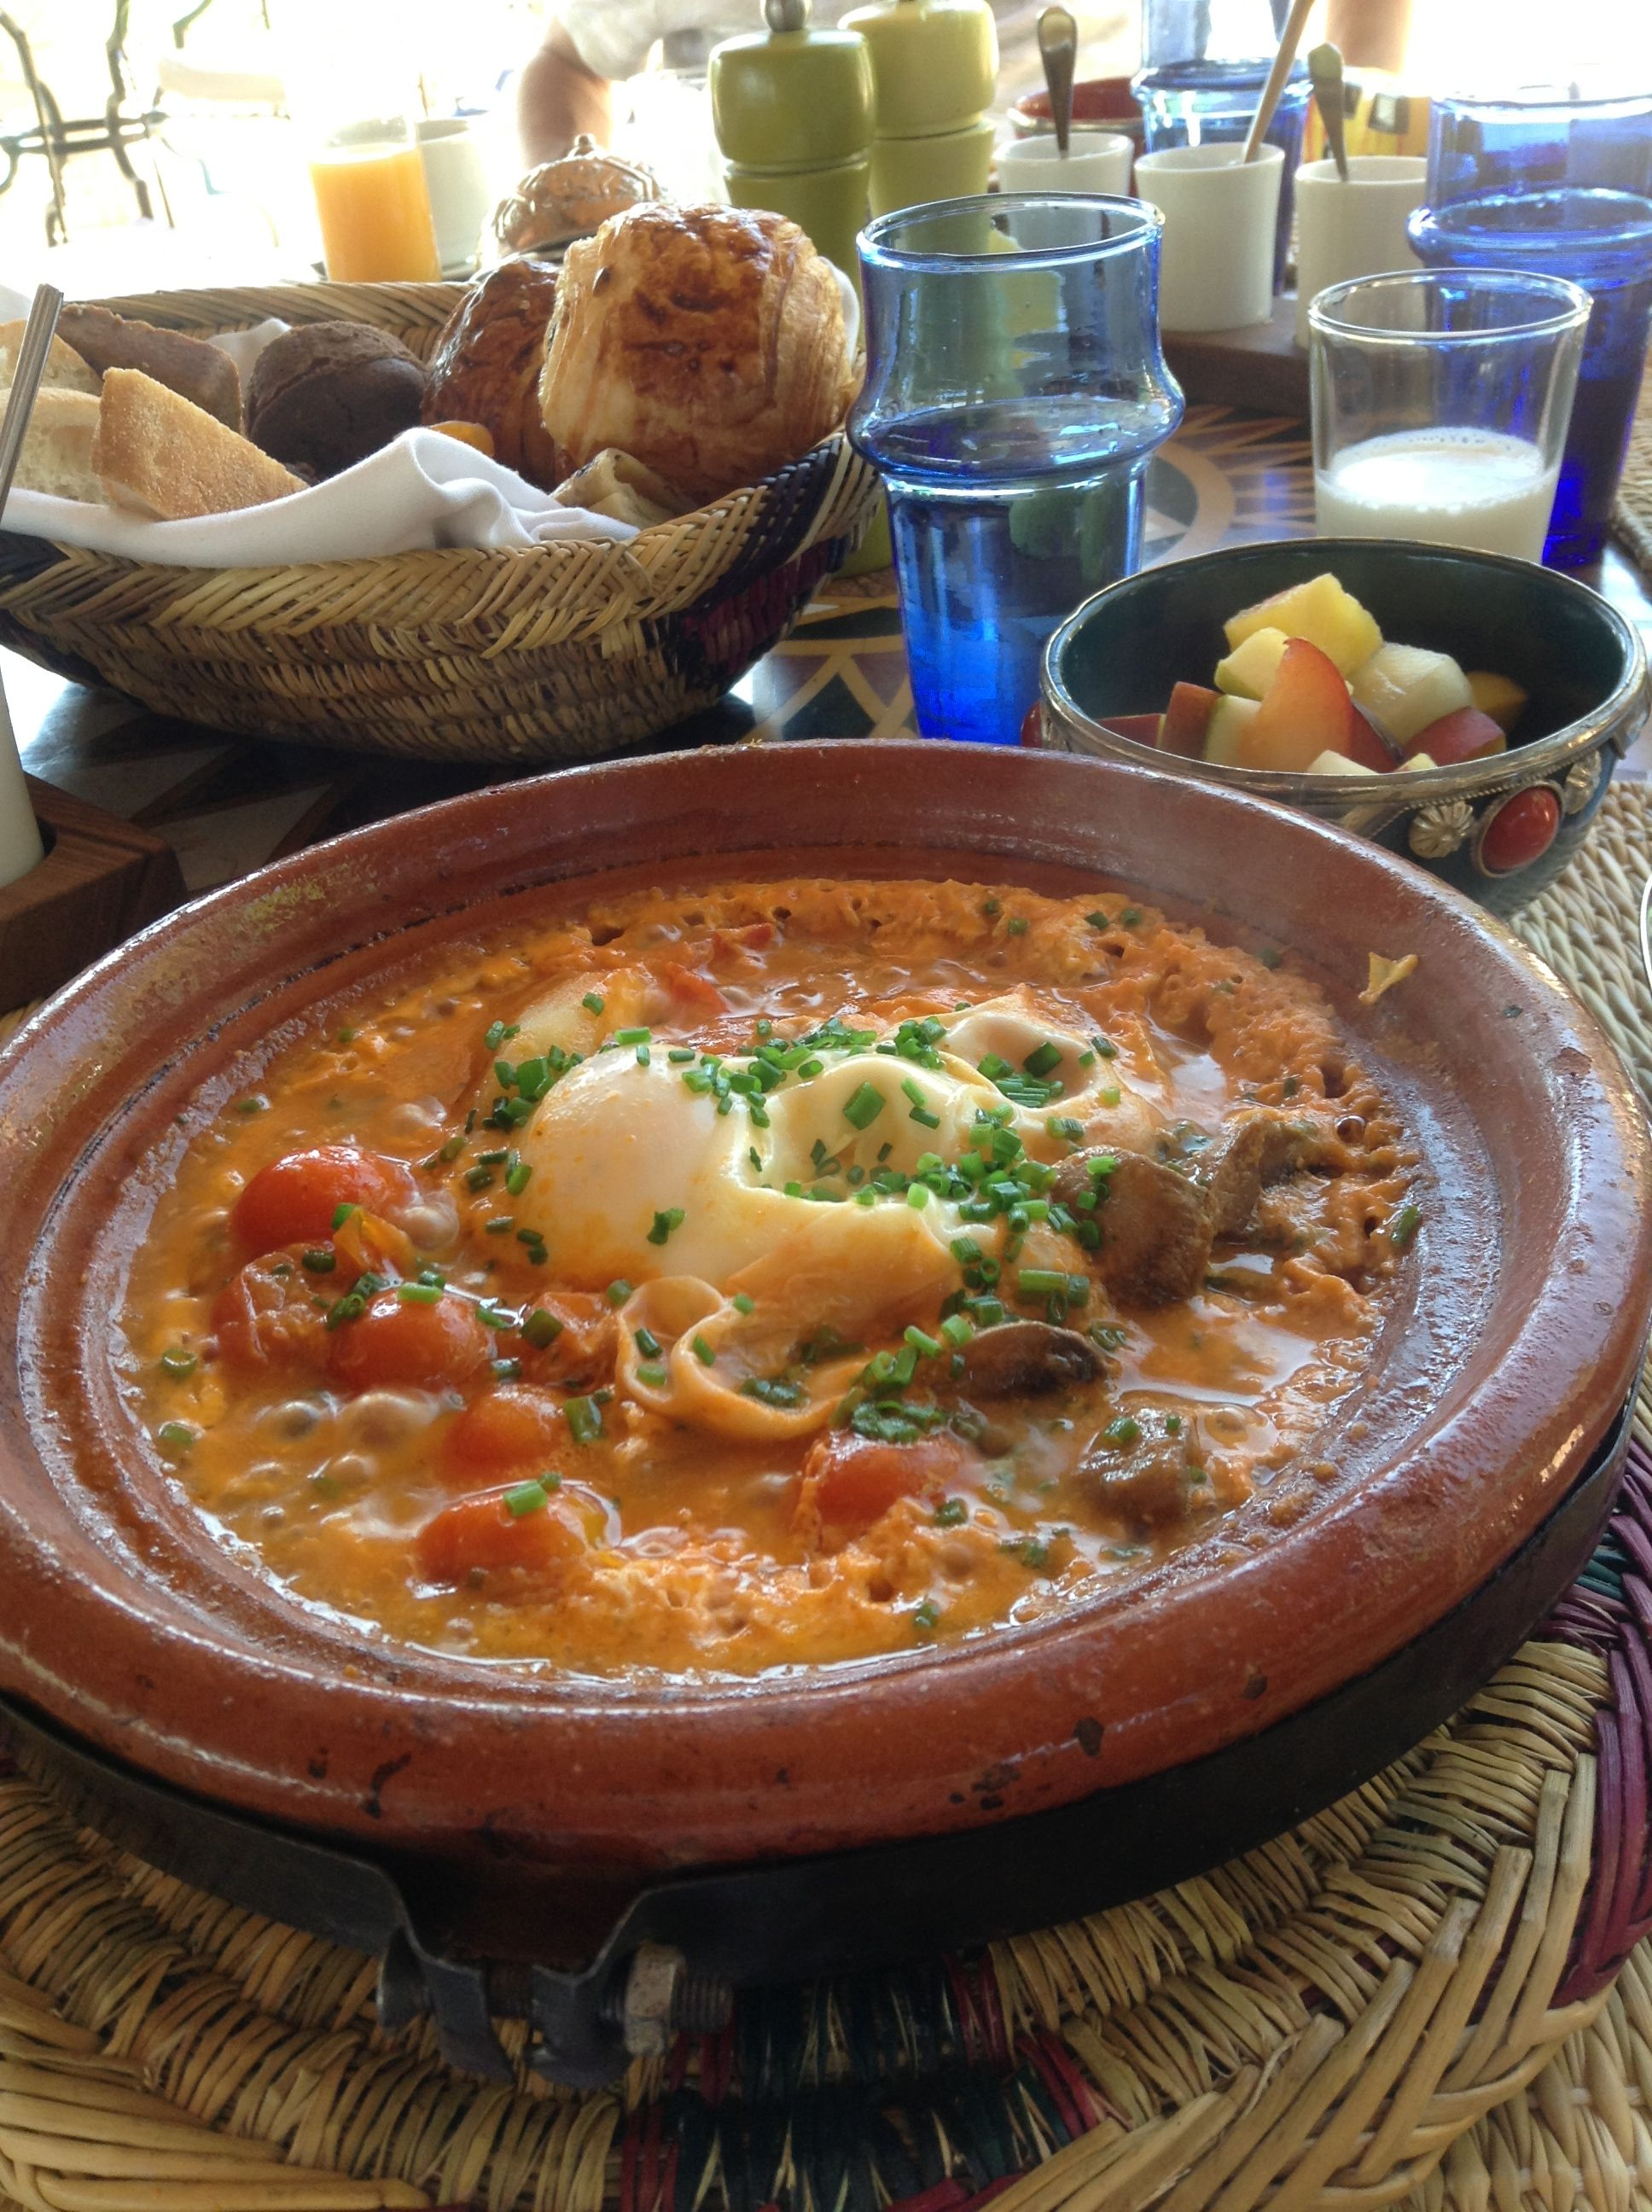 Breakfast tagine in Morocco